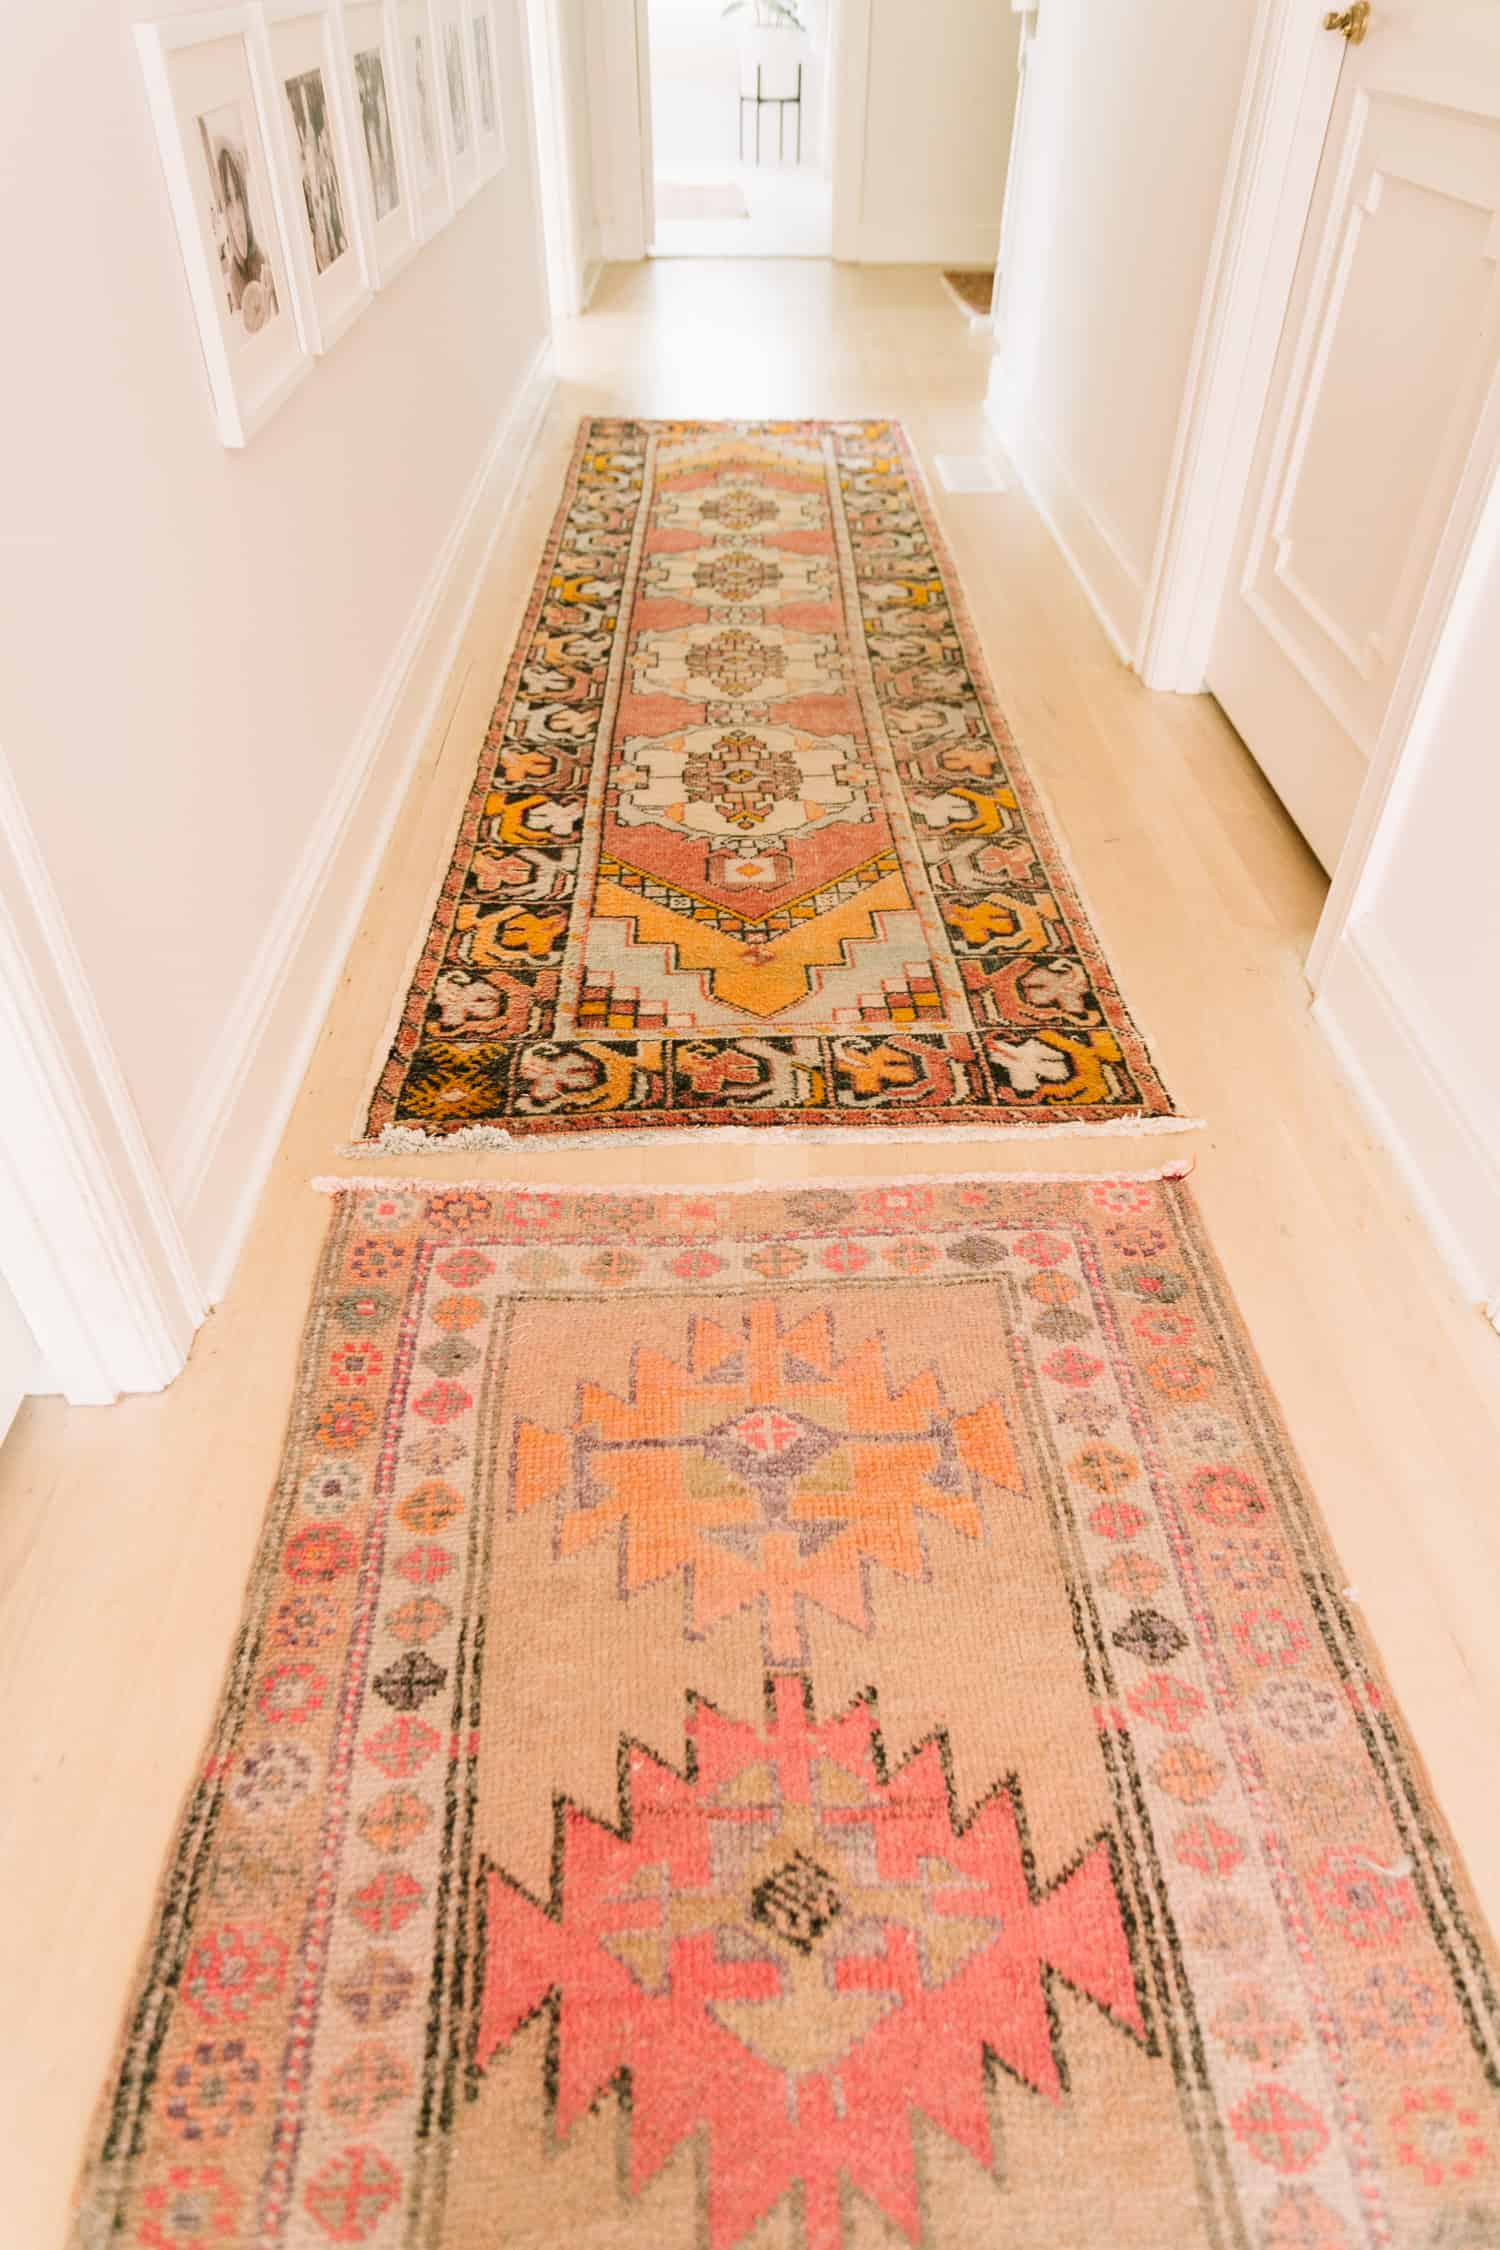 How To Shop For Vintage Rugs A Beautiful Mess